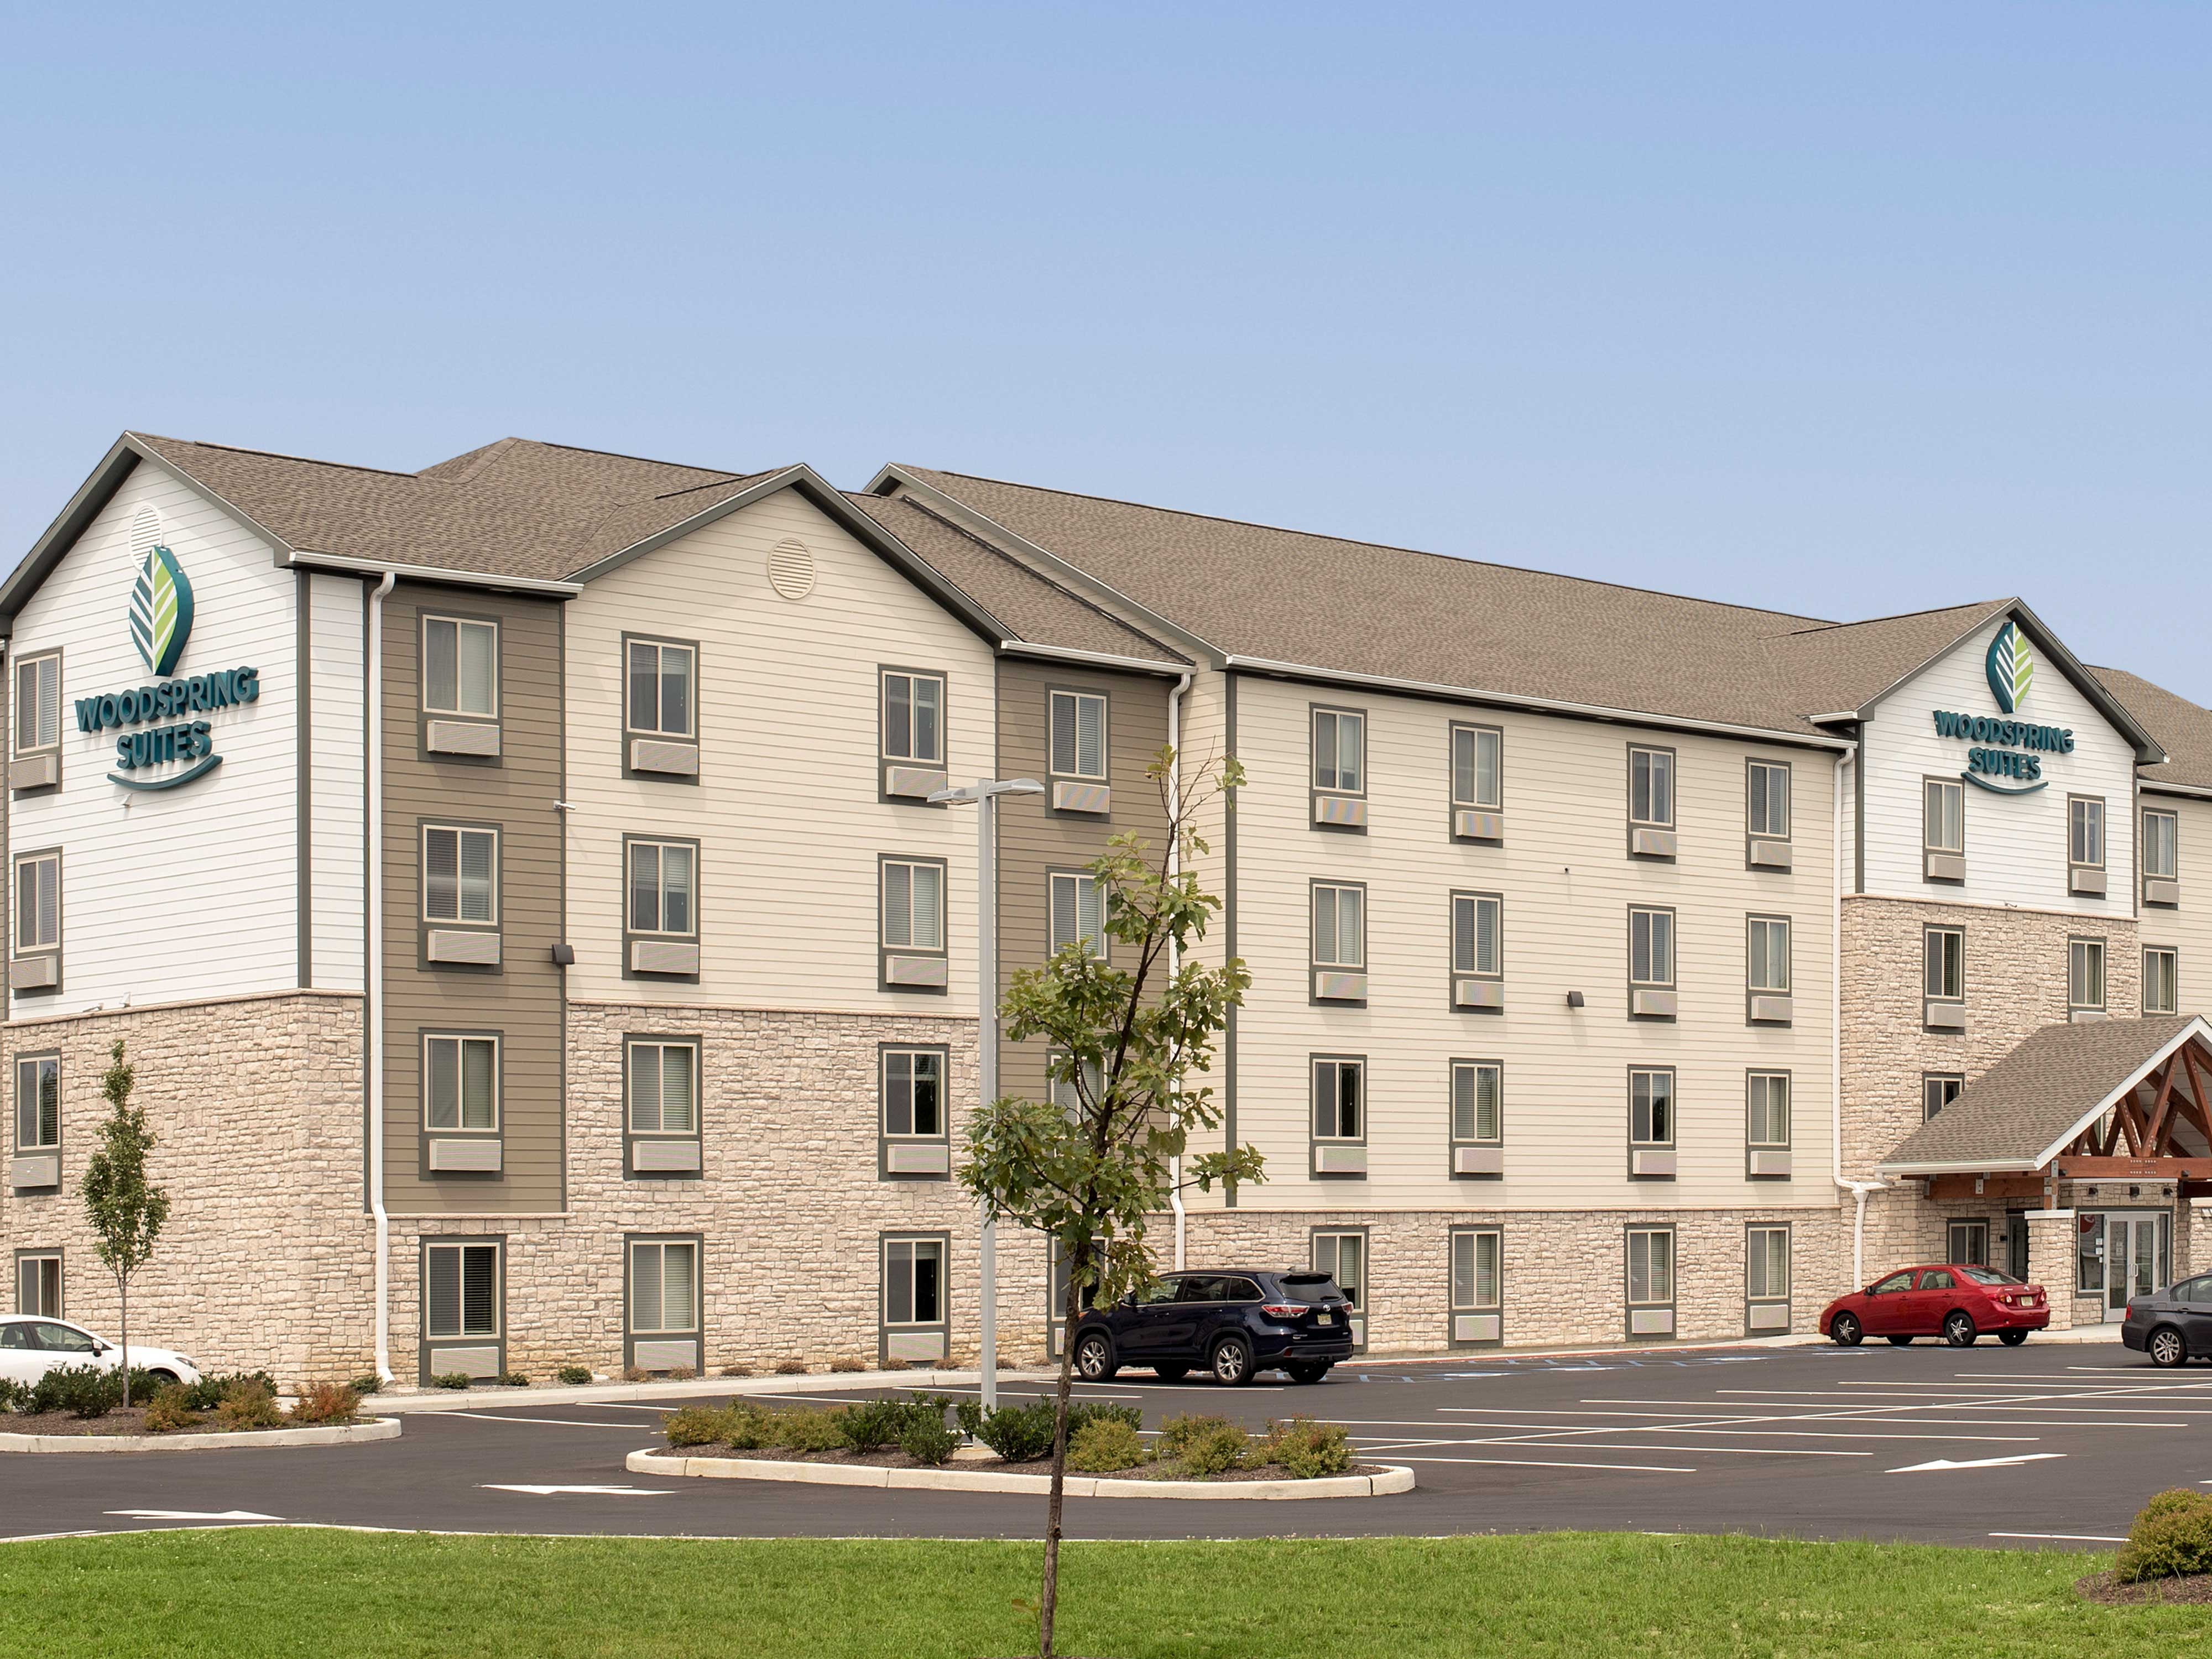 WoodSpring Suites Cherry Hill image 8